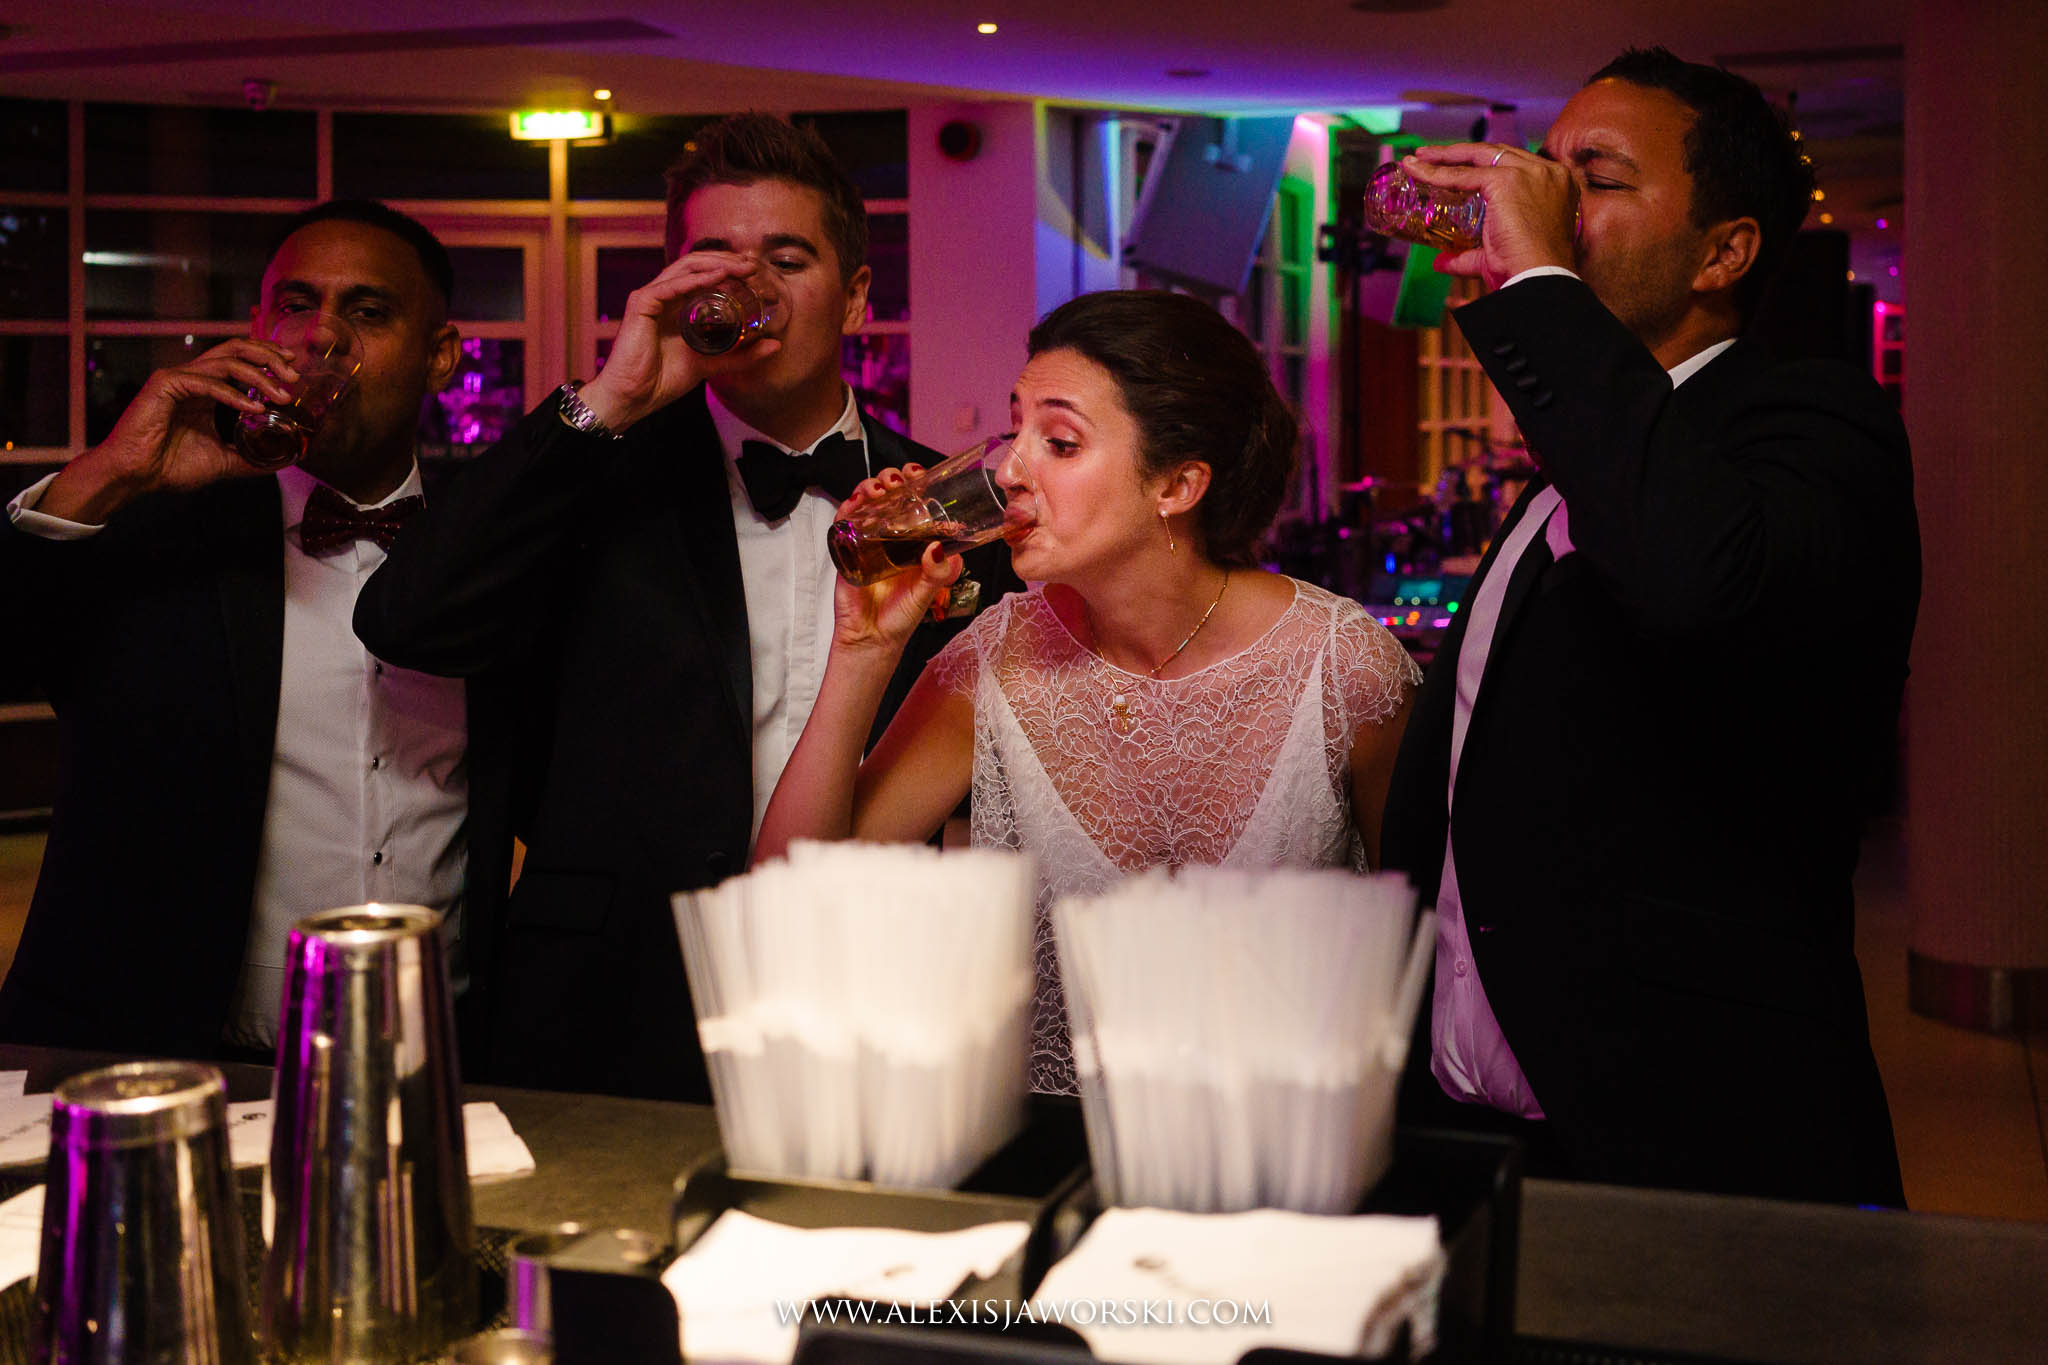 bride doing shots!